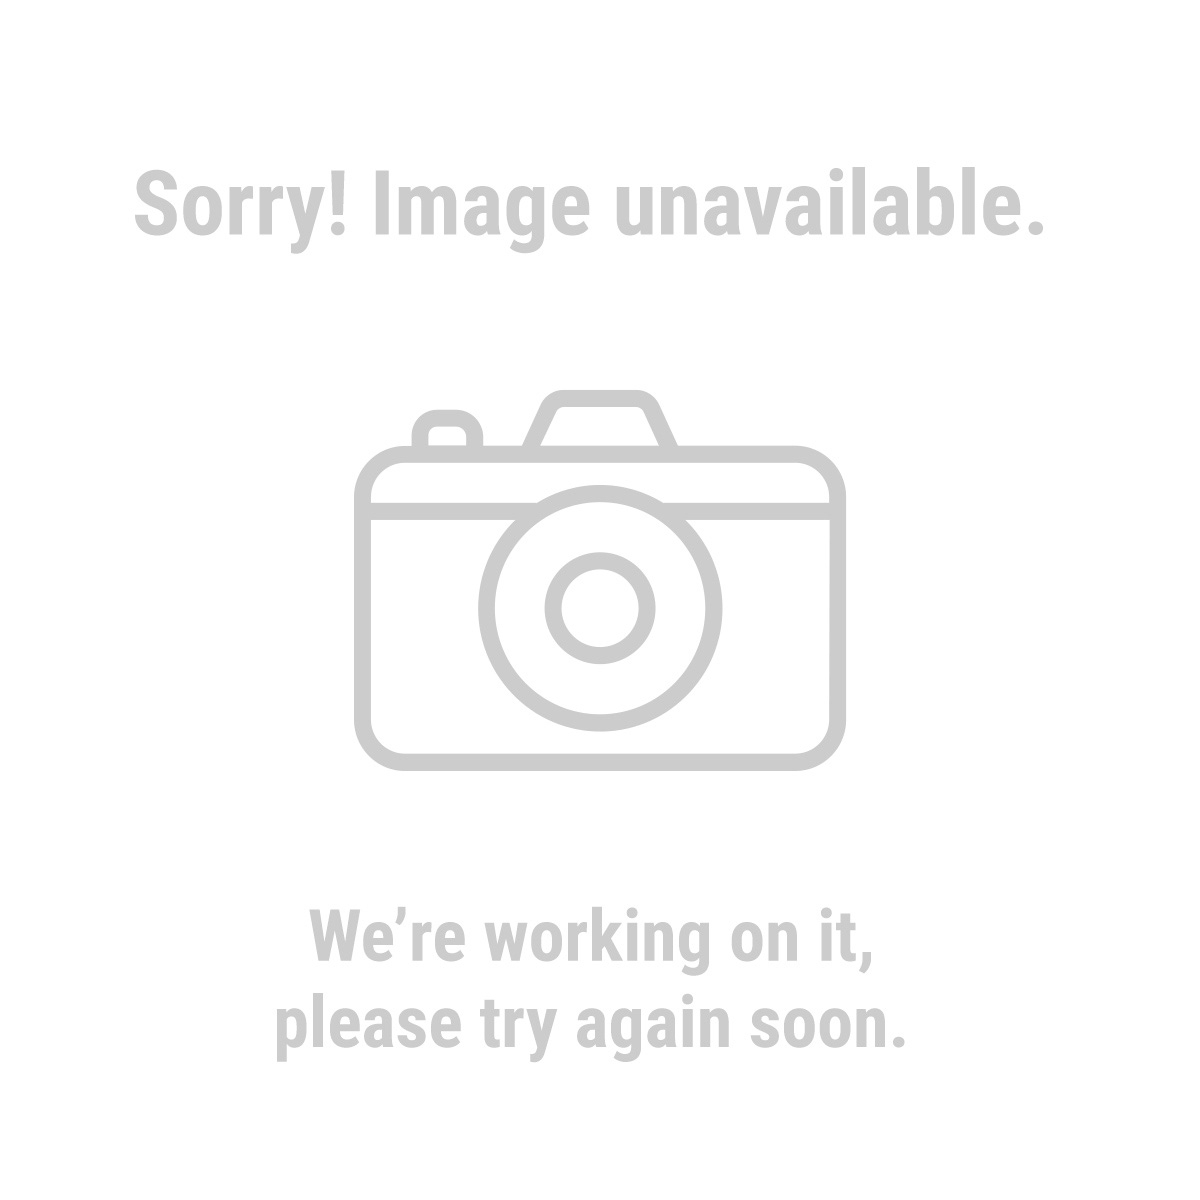 Pittsburgh® 62832 40 Pc Carbon Steel Metric Tap and Die Set